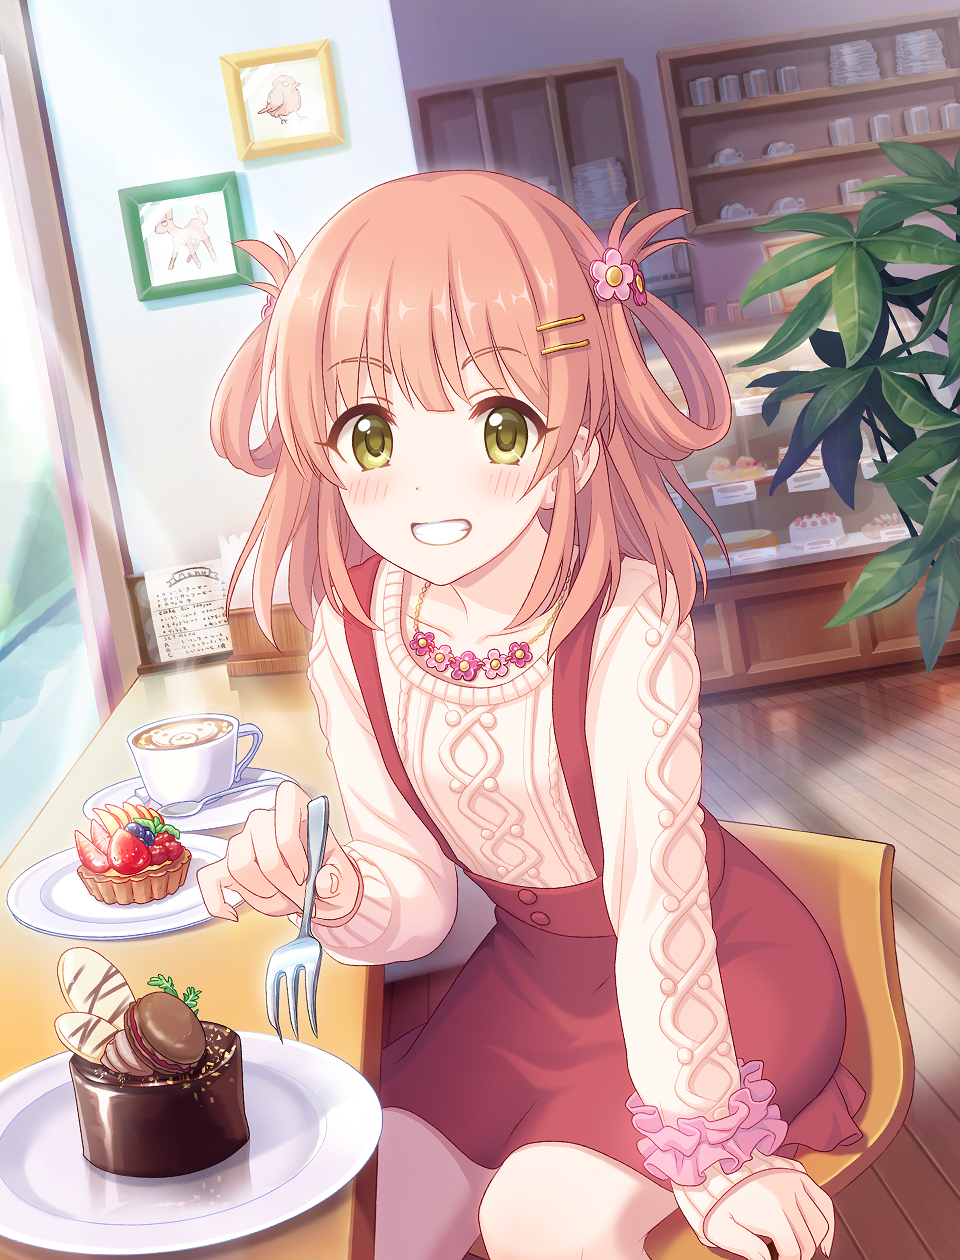 1girl blush brown_hair cake casual chair chocolate_cake coffee coffee_mug collarbone cup food green_eyes hair_ornament hair_rings hairclip highres inosaki_rino jewelry looking_at_viewer macaron mug necklace official_art orange_hair pastry pink_scrunchie plant pov princess_connect! scrunchie sitting skirt solo suspender_skirt suspenders two_side_up wrist_scrunchie yellow_eyes